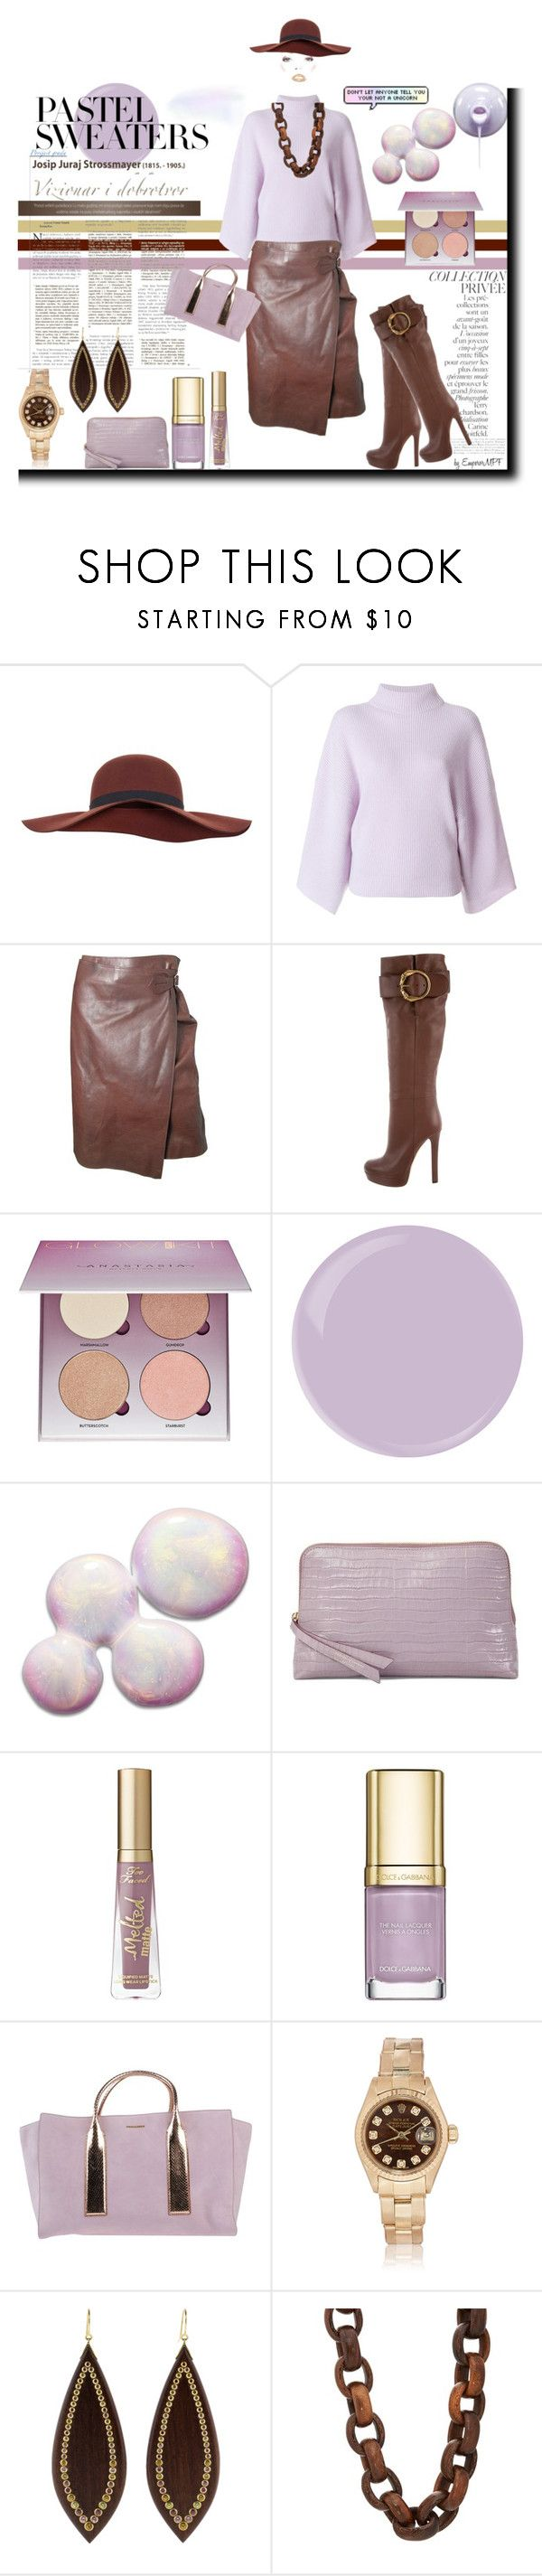 """""""Pastel Sweaters"""" by emperormpf ❤ liked on Polyvore featuring Miss Selfridge, Petar Petrov, Hermès, By Terry, Gucci, Anastasia Beverly Hills, Arcona, Aspinal of London, Too Faced Cosmetics and Dolce&Gabbana"""